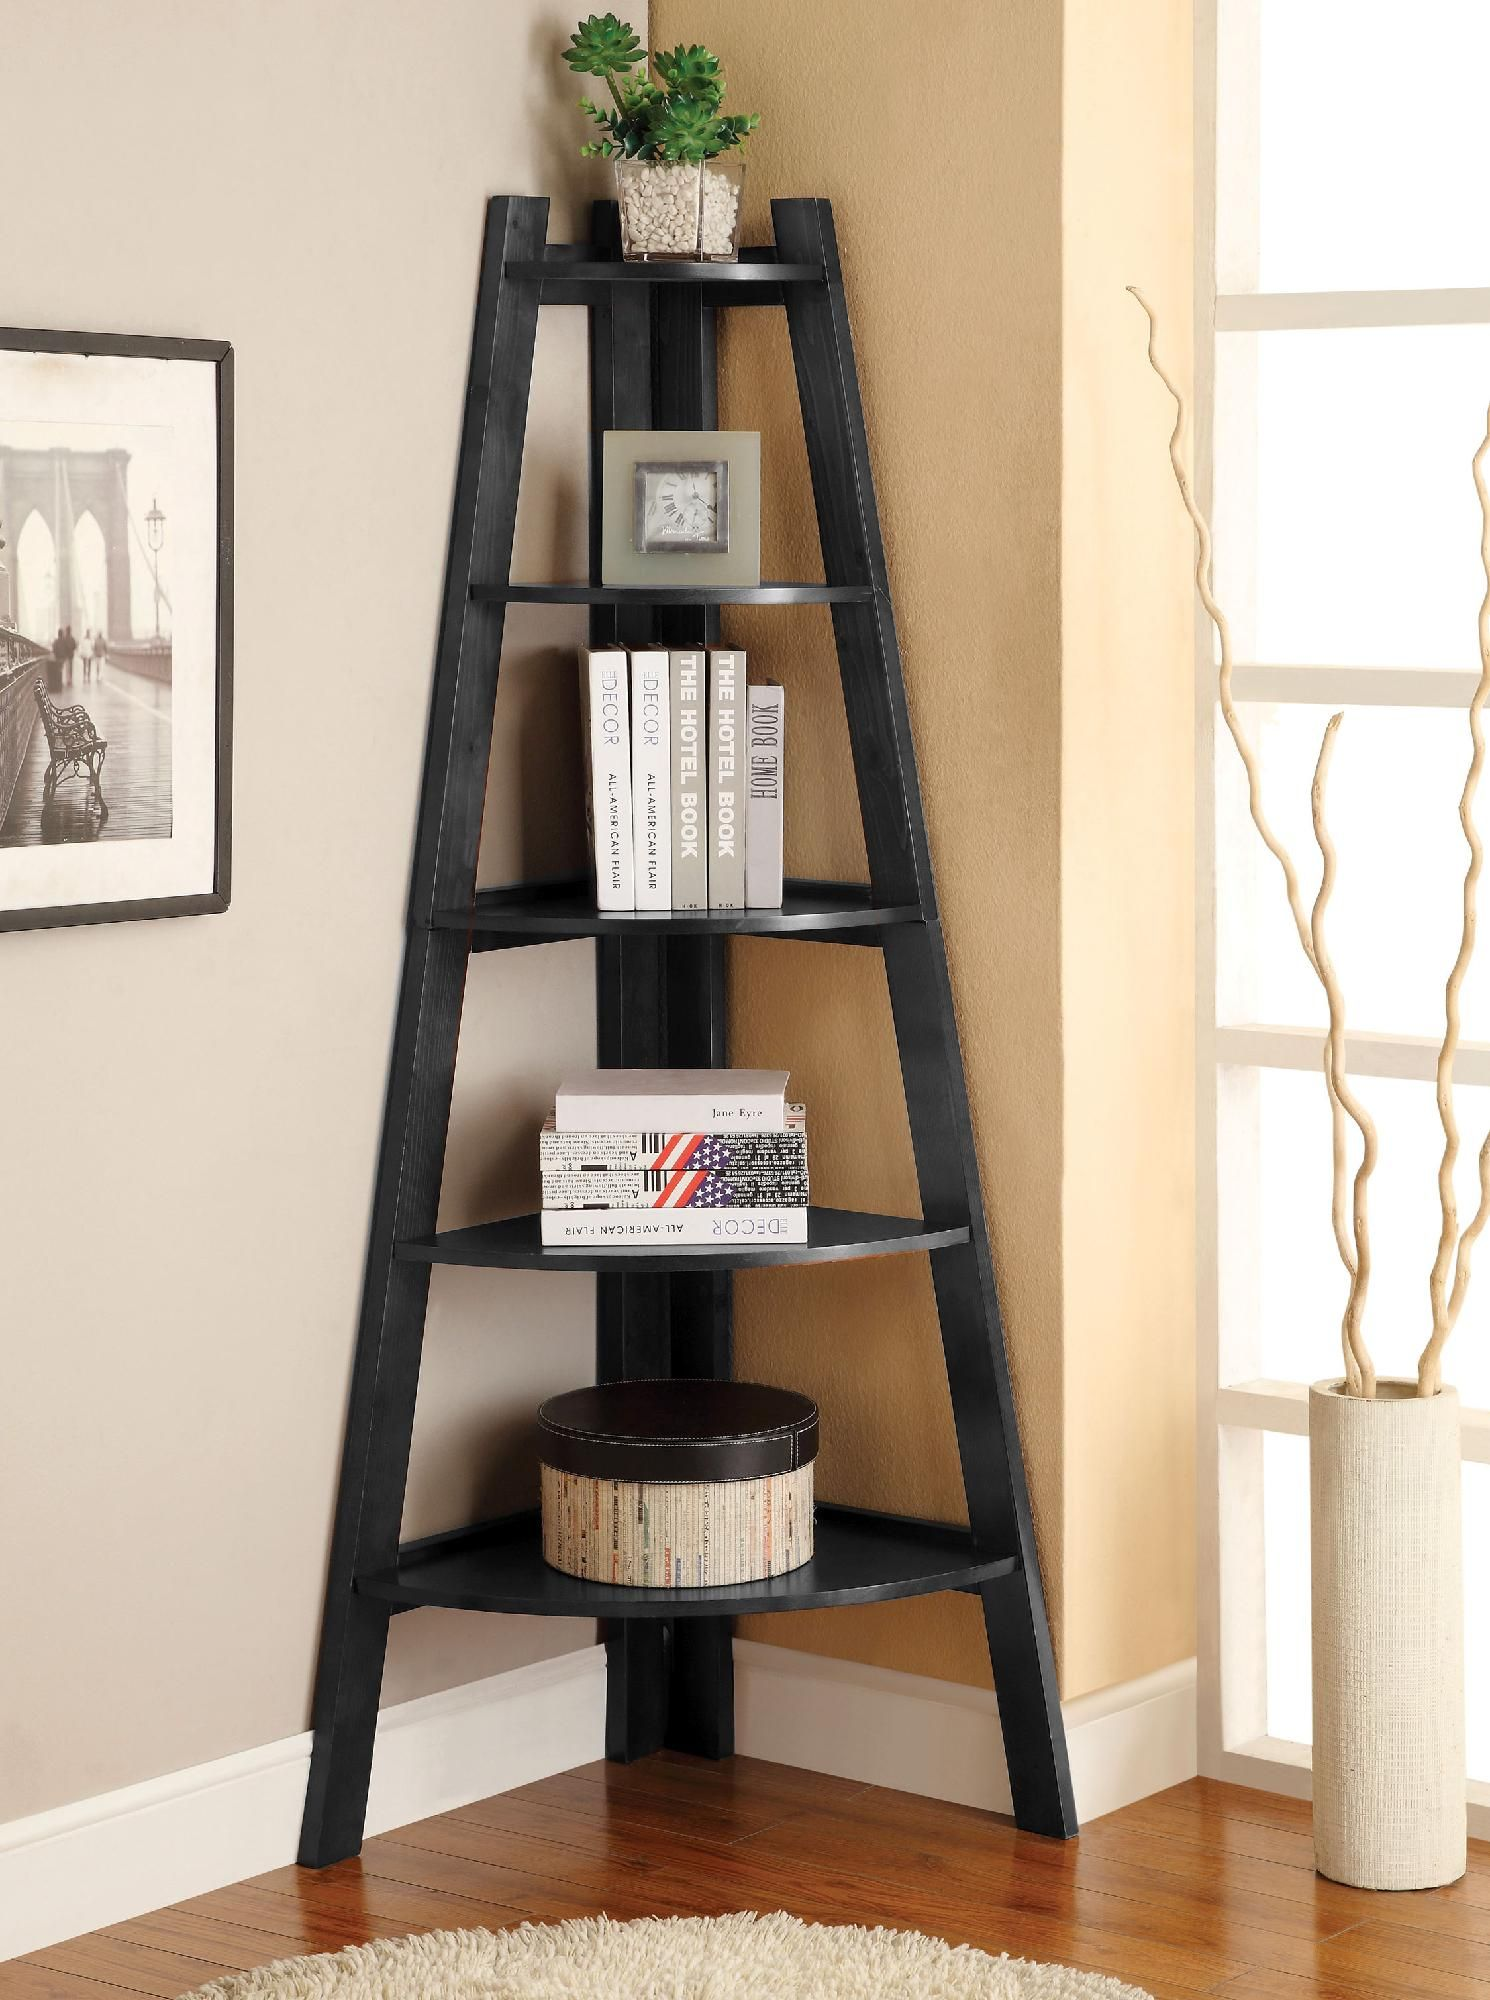 Carmine Corner 5 Tier Ladder Shelf Kmart Decor Display